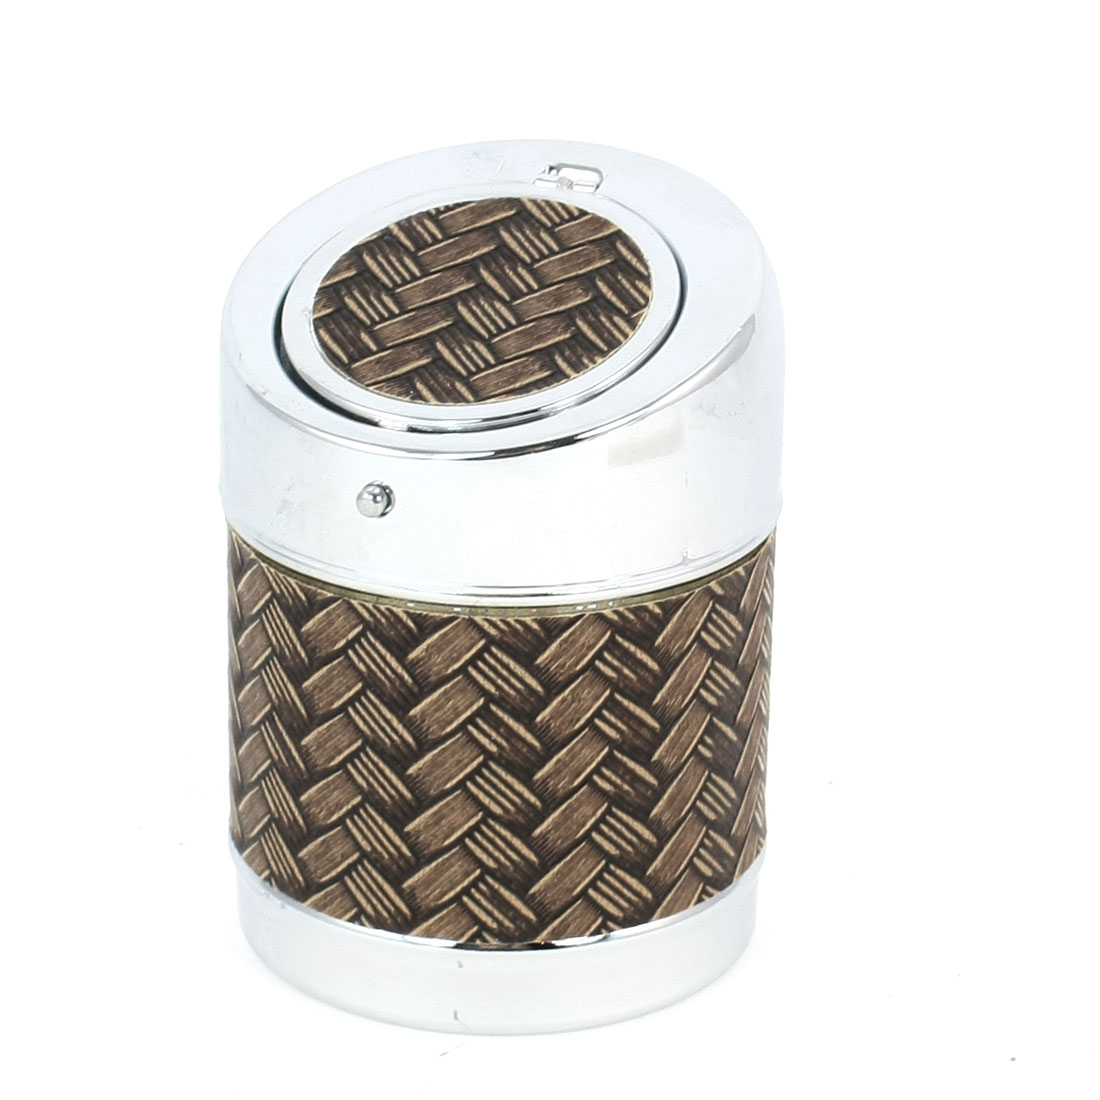 Household 9.5x6.5cm Brown Braided Pattern Cigarette Ash Case Ashtray